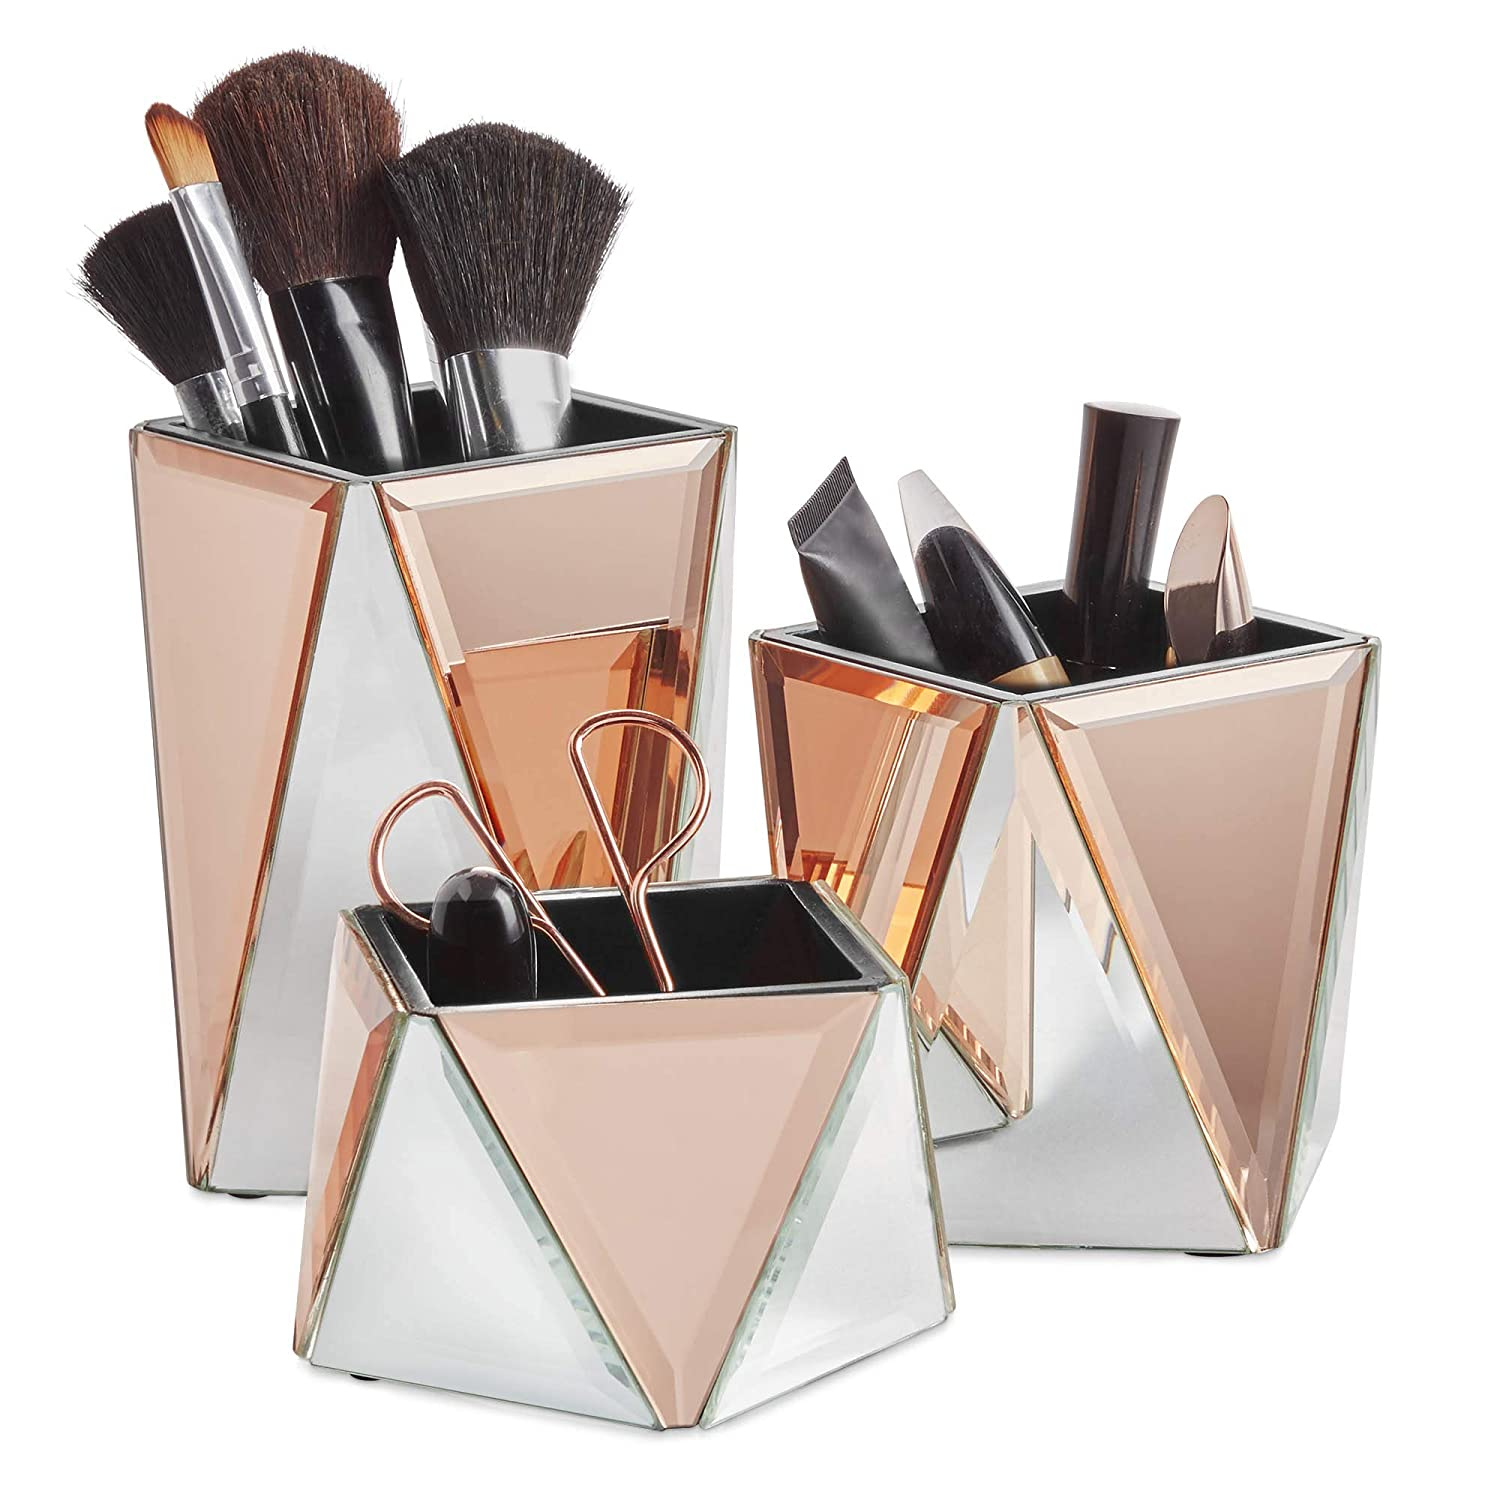 Beautify Rose Gold Mirrored Storage Pots for Makeup Cosmetics, Brushes, Jewelry and Accessories – Geometric Silver and Rose Gold, Set of 3